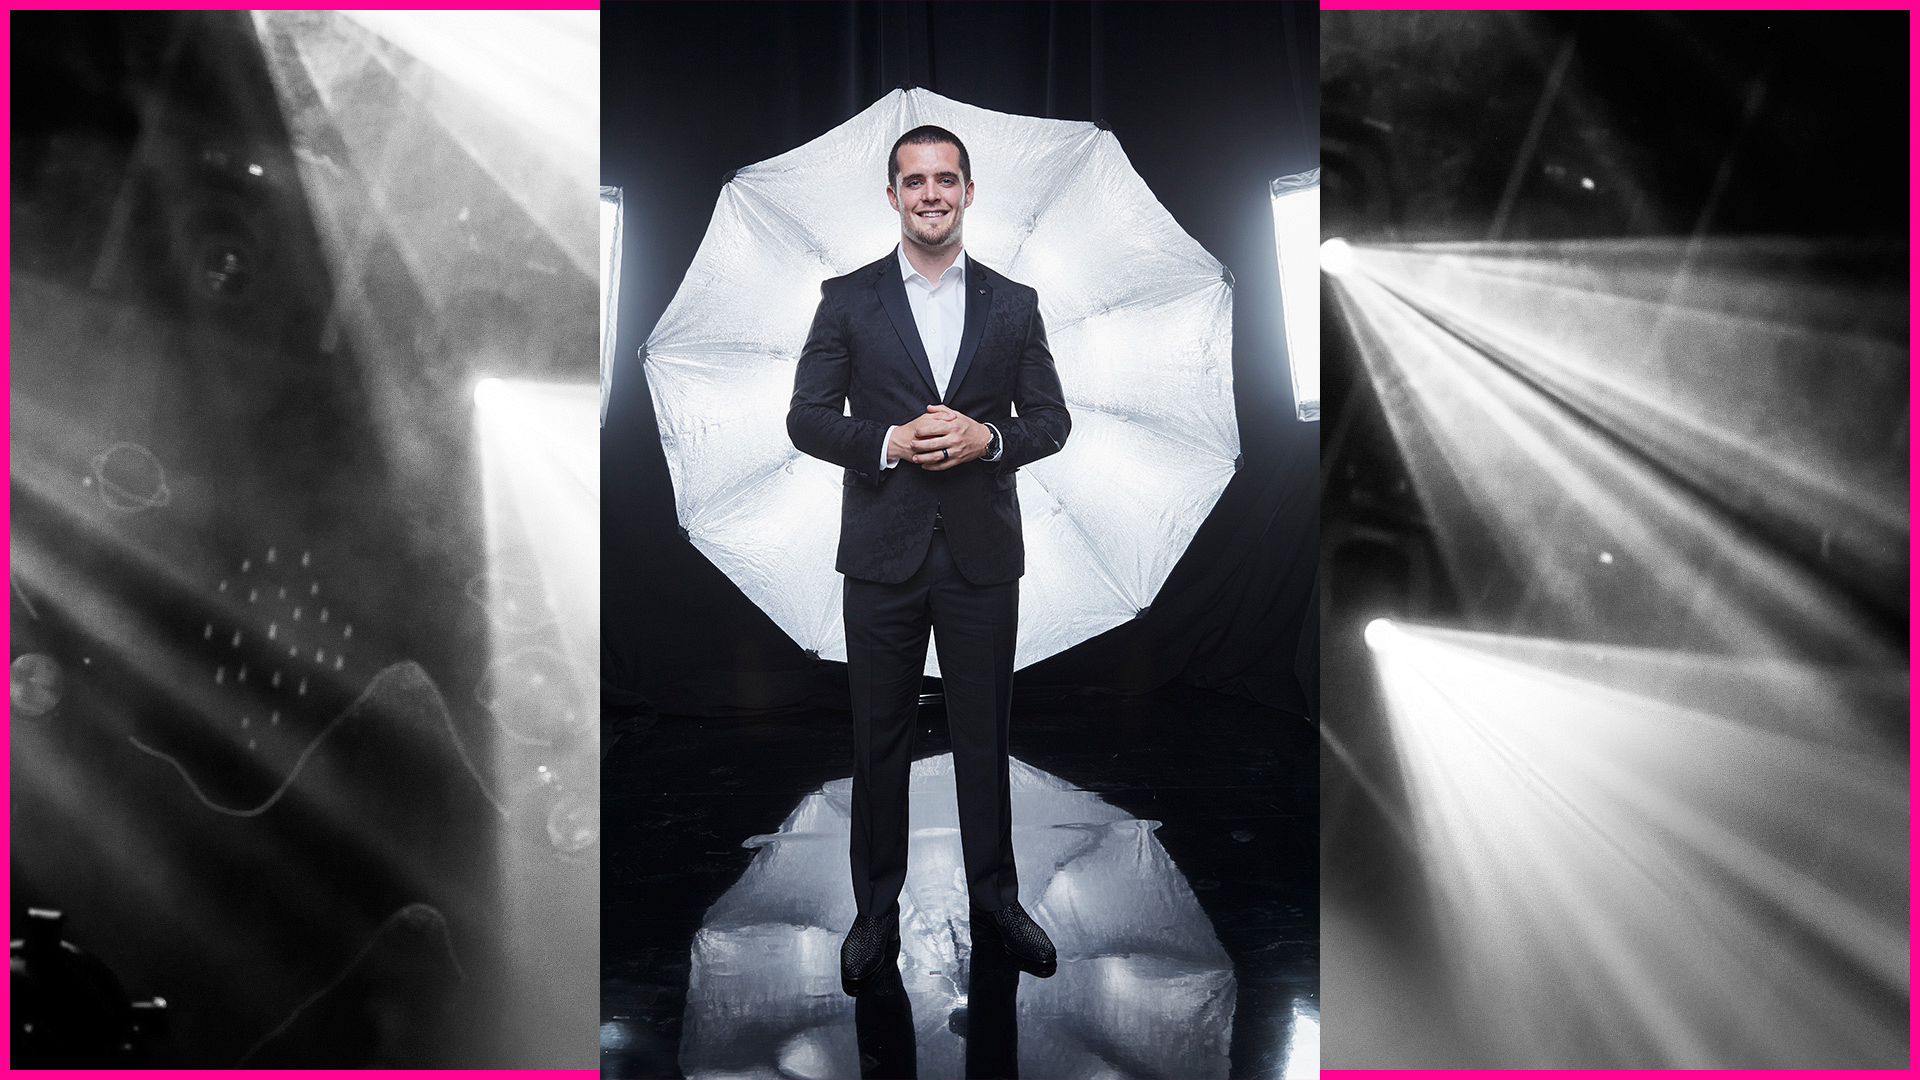 Oakland Raiders quarterback Derek Carr trades in his uniform for a suit at the 52nd ACM Awards.